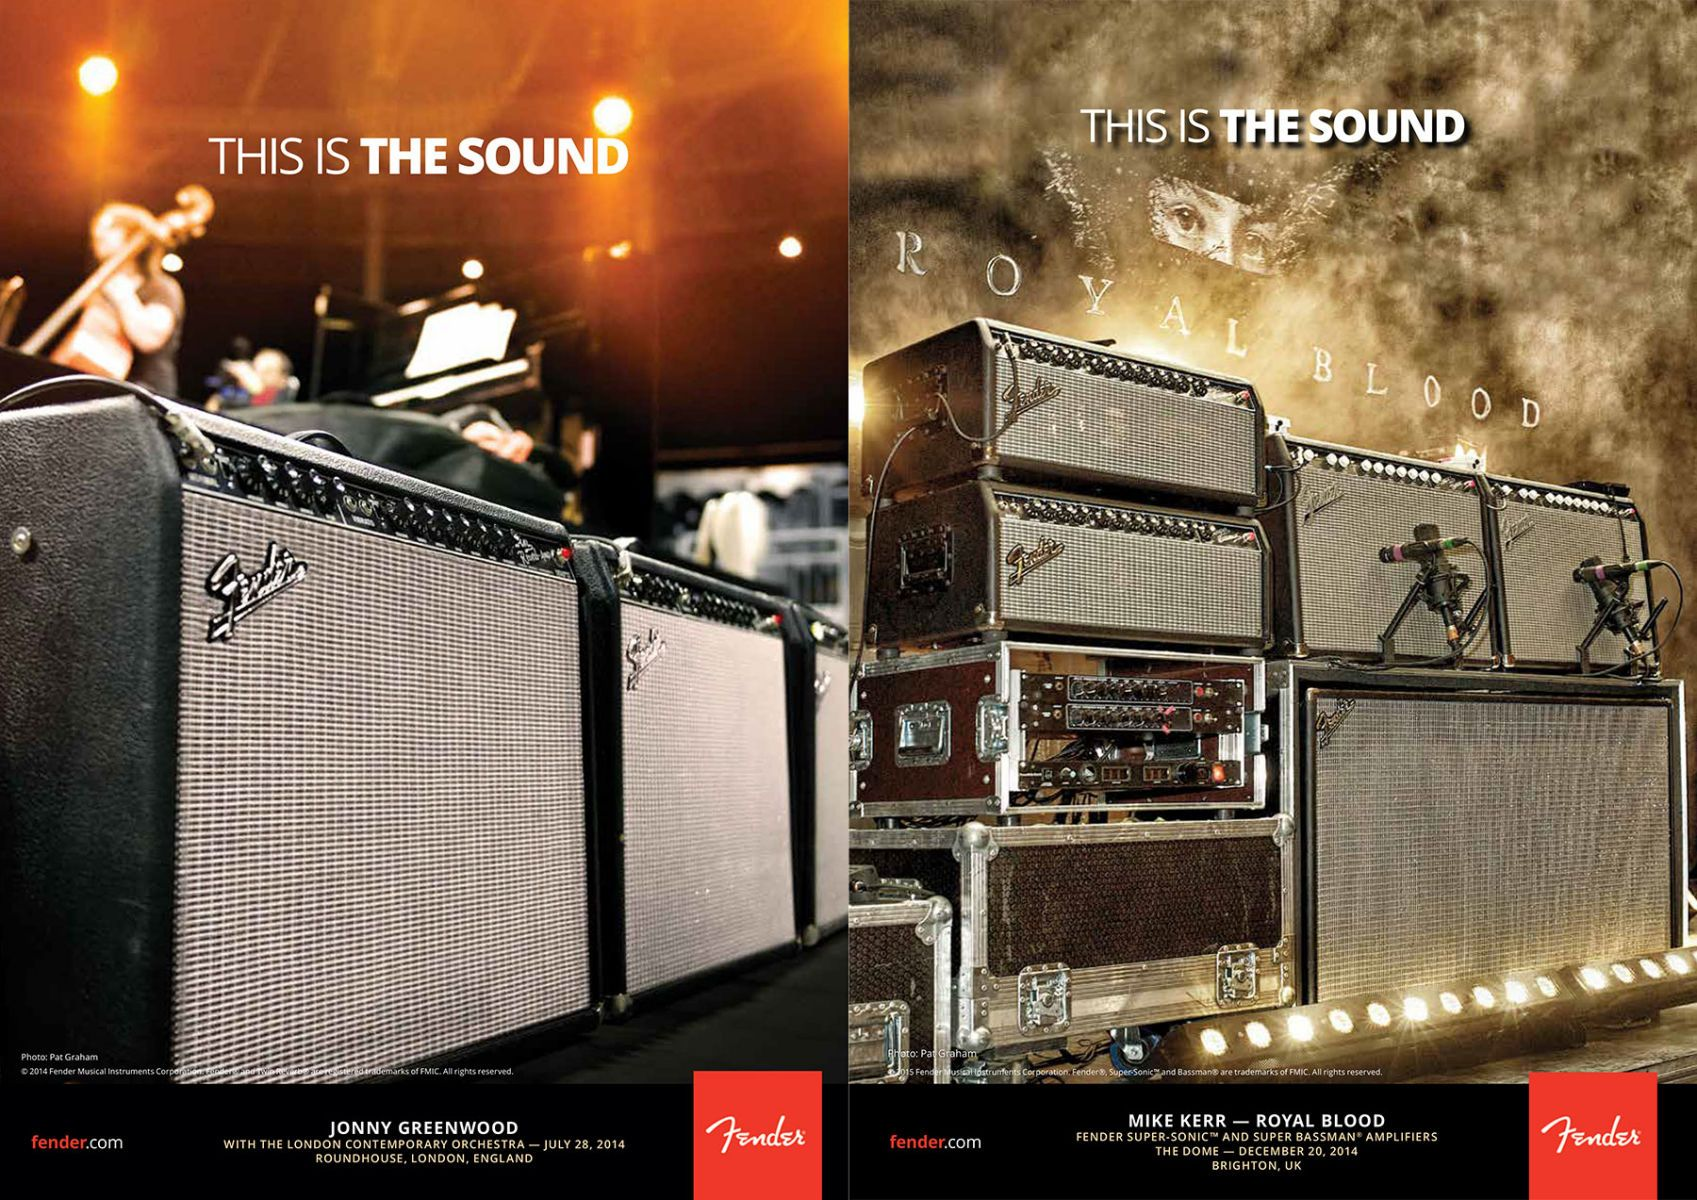 1r2014_fender_this_is_the_sound_ad_jonny_greenwood